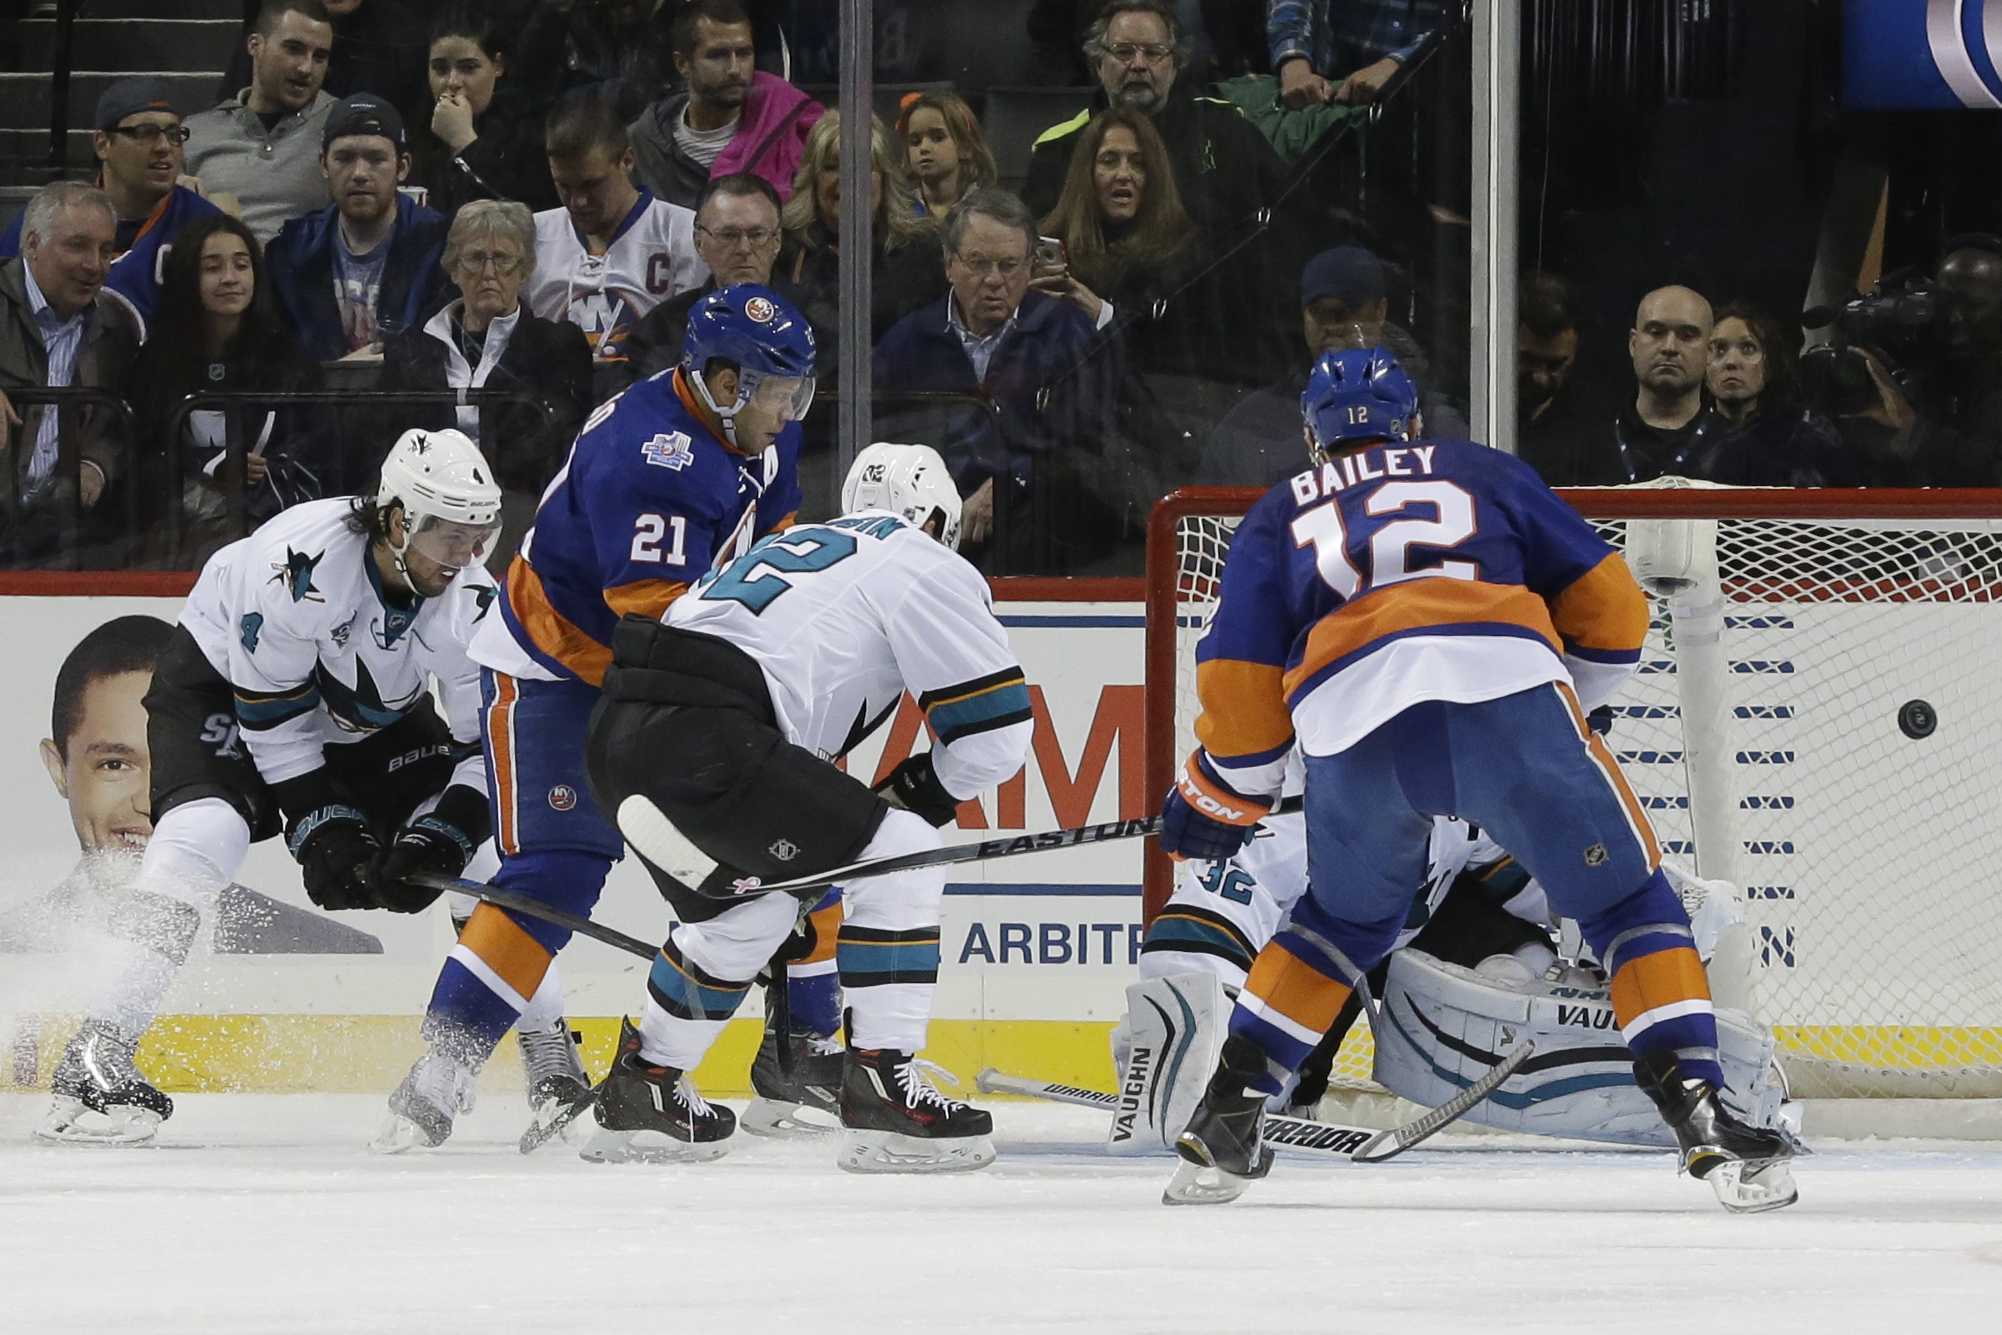 New York Islanders right wing Kyle Okposo (21) scores a goal during the third period of an NHL hockey game against the San Jose Sharks, Saturday, Oct. 17, 2015 in New York. The Islanders won 6-3. (AP Photo/Mary Altaffer)